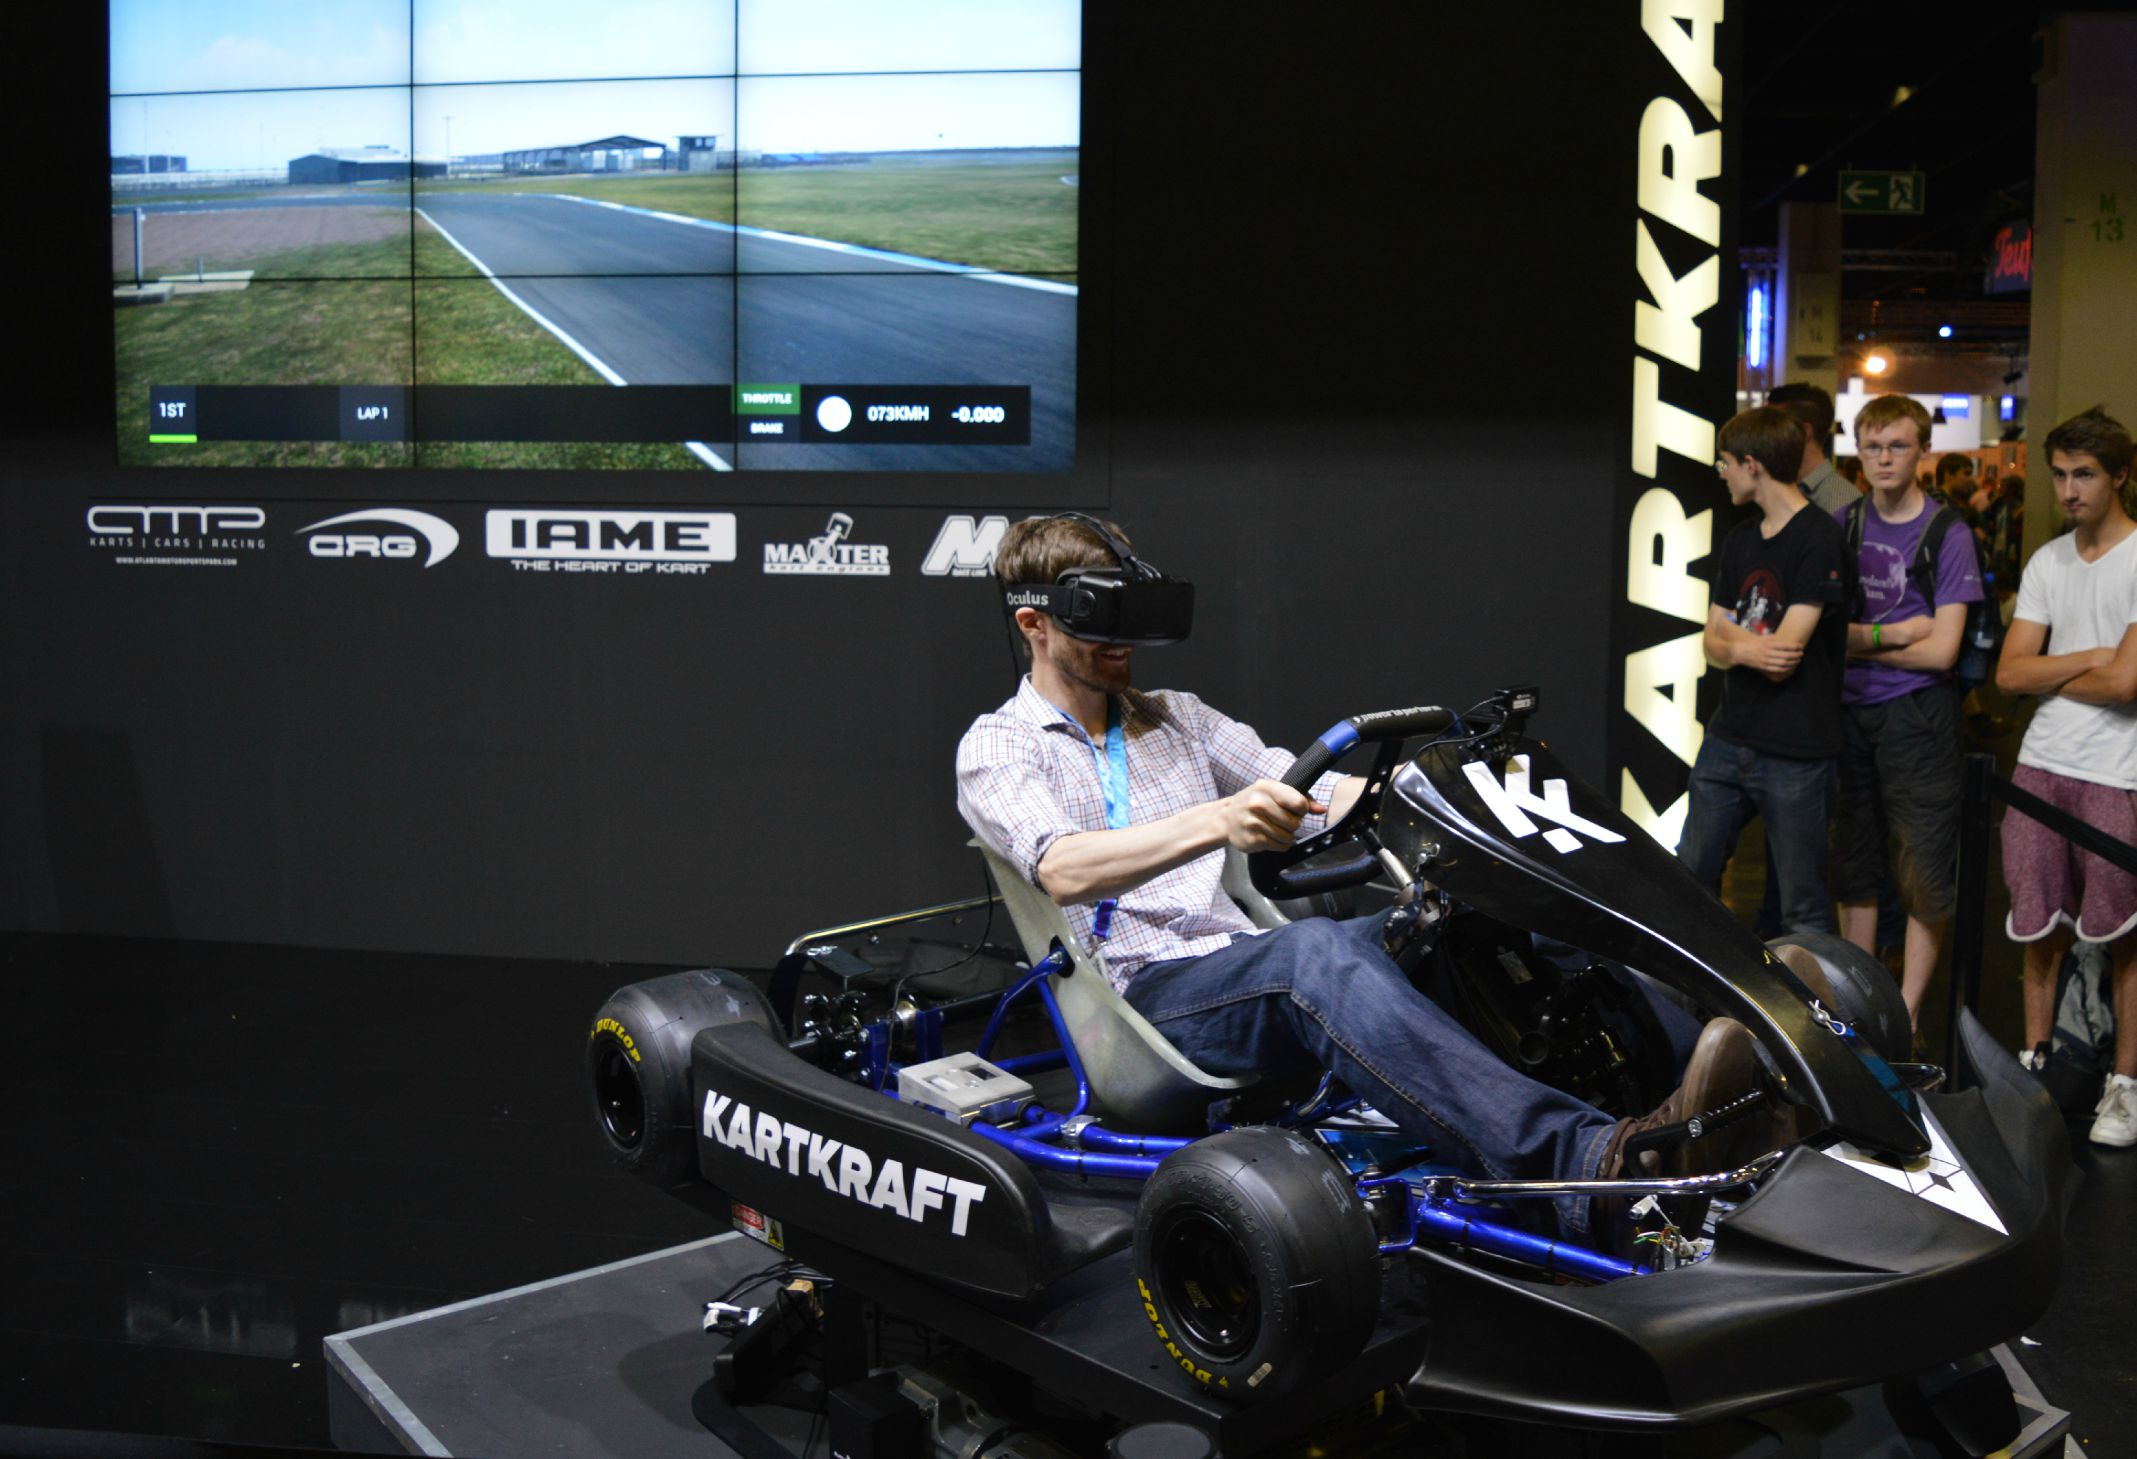 hands on kartkraft vr